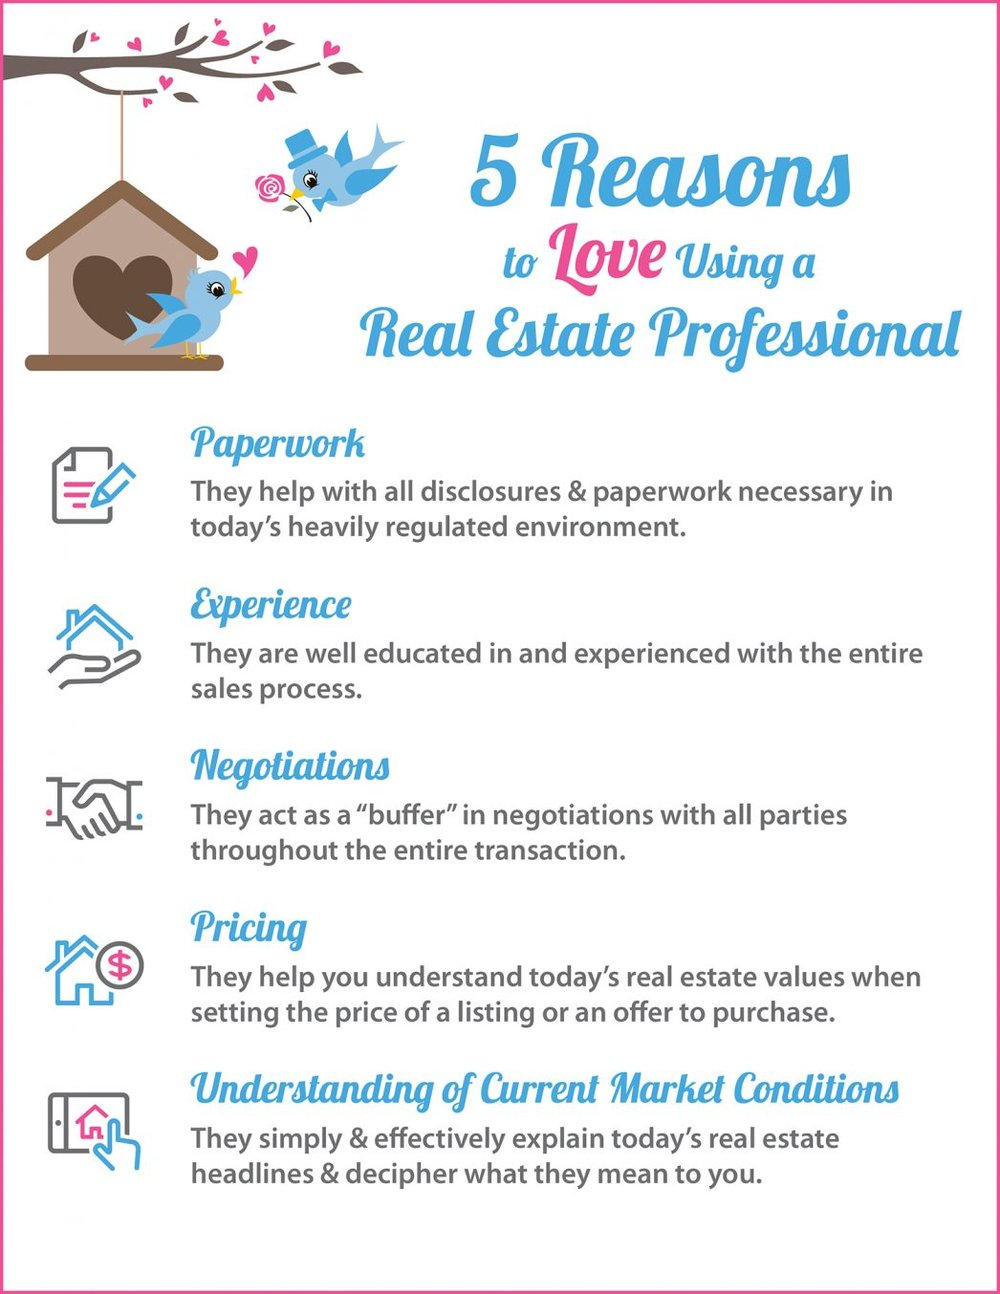 Highlights: Hiring a real estate professional to guide you through the process of buying a home or selling your house can be one of the best decisions you make! They are there for you to help with paperwork, explaining the process, negotiations, and helping you with pricing (both when making an offer or setting the right price for your home). One of the top reasons to hire a real estate professional is their understanding of your local market and how the conditions in your neighborhood will impact your experience. If you would like to get connected with a great real estate agent, please fill out the form below. We work with many great agents all over California and would be happy to introduce you to one.